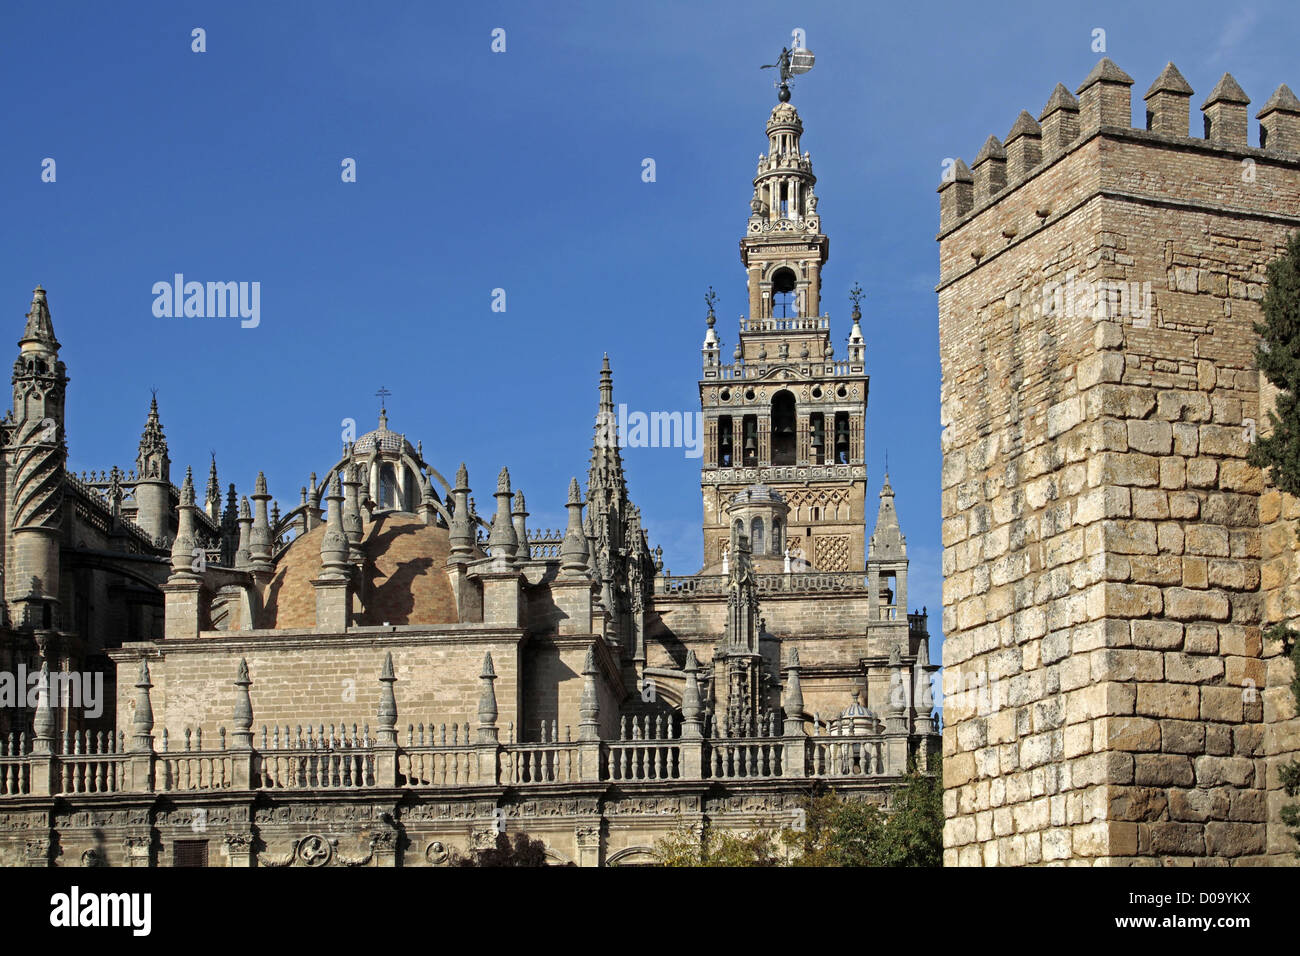 CATHEDRAL AND GIRALDA MOORISH TOWER OF THE OLD 12TH CENTURY GREAT MOSQUE SEVILLE ANDALUSIA SPAIN Stock Photo